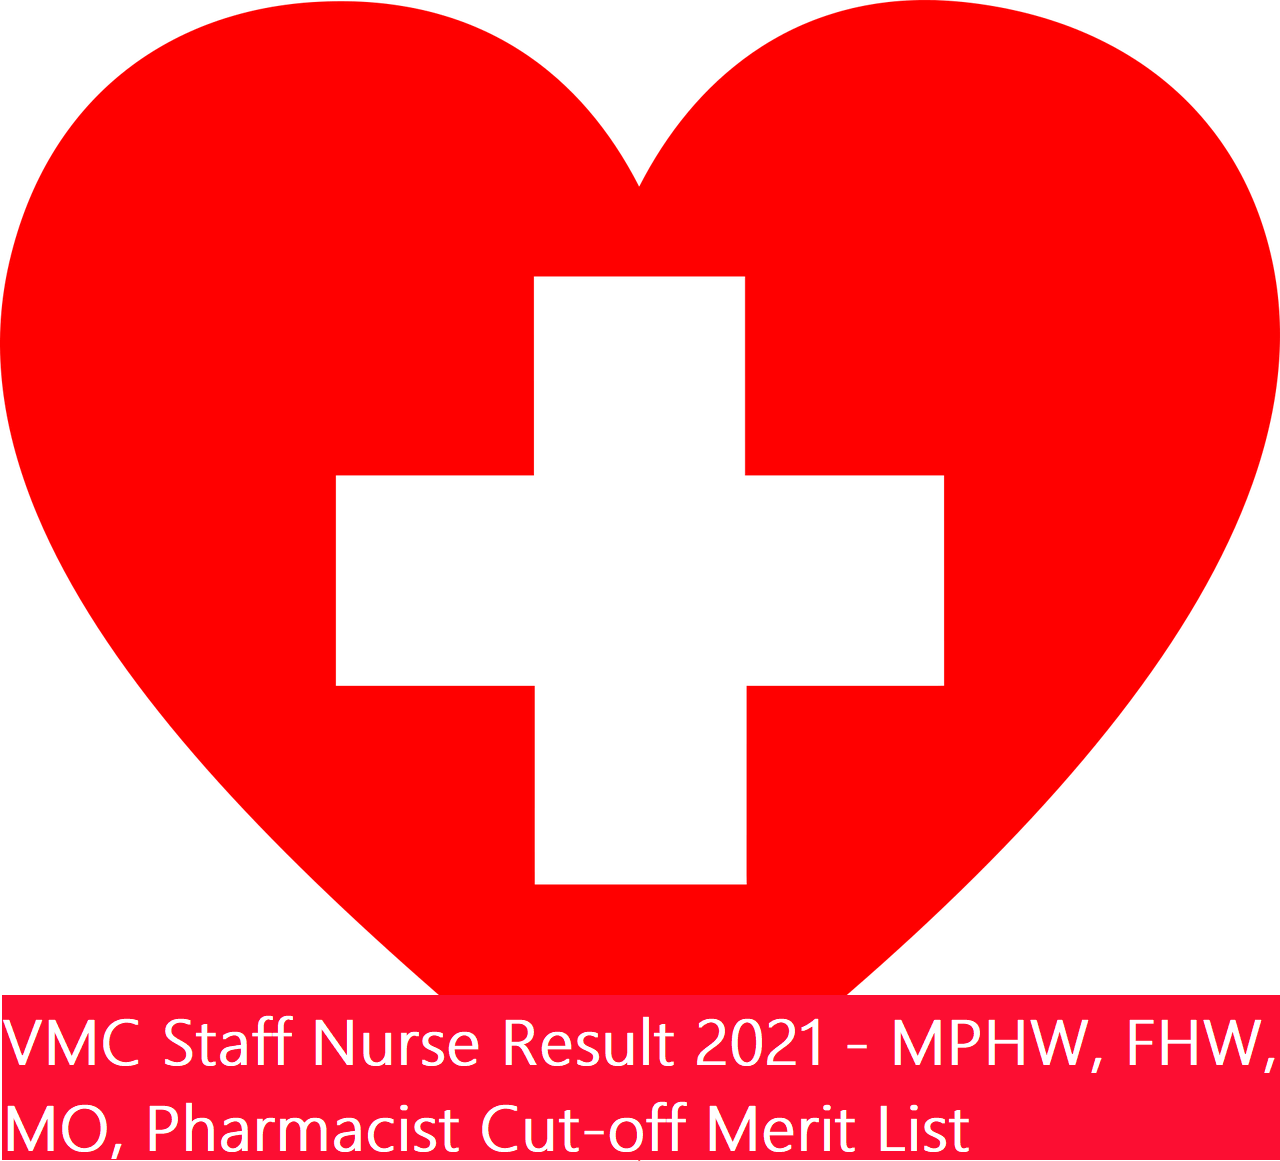 VMC Staff Nurse Result